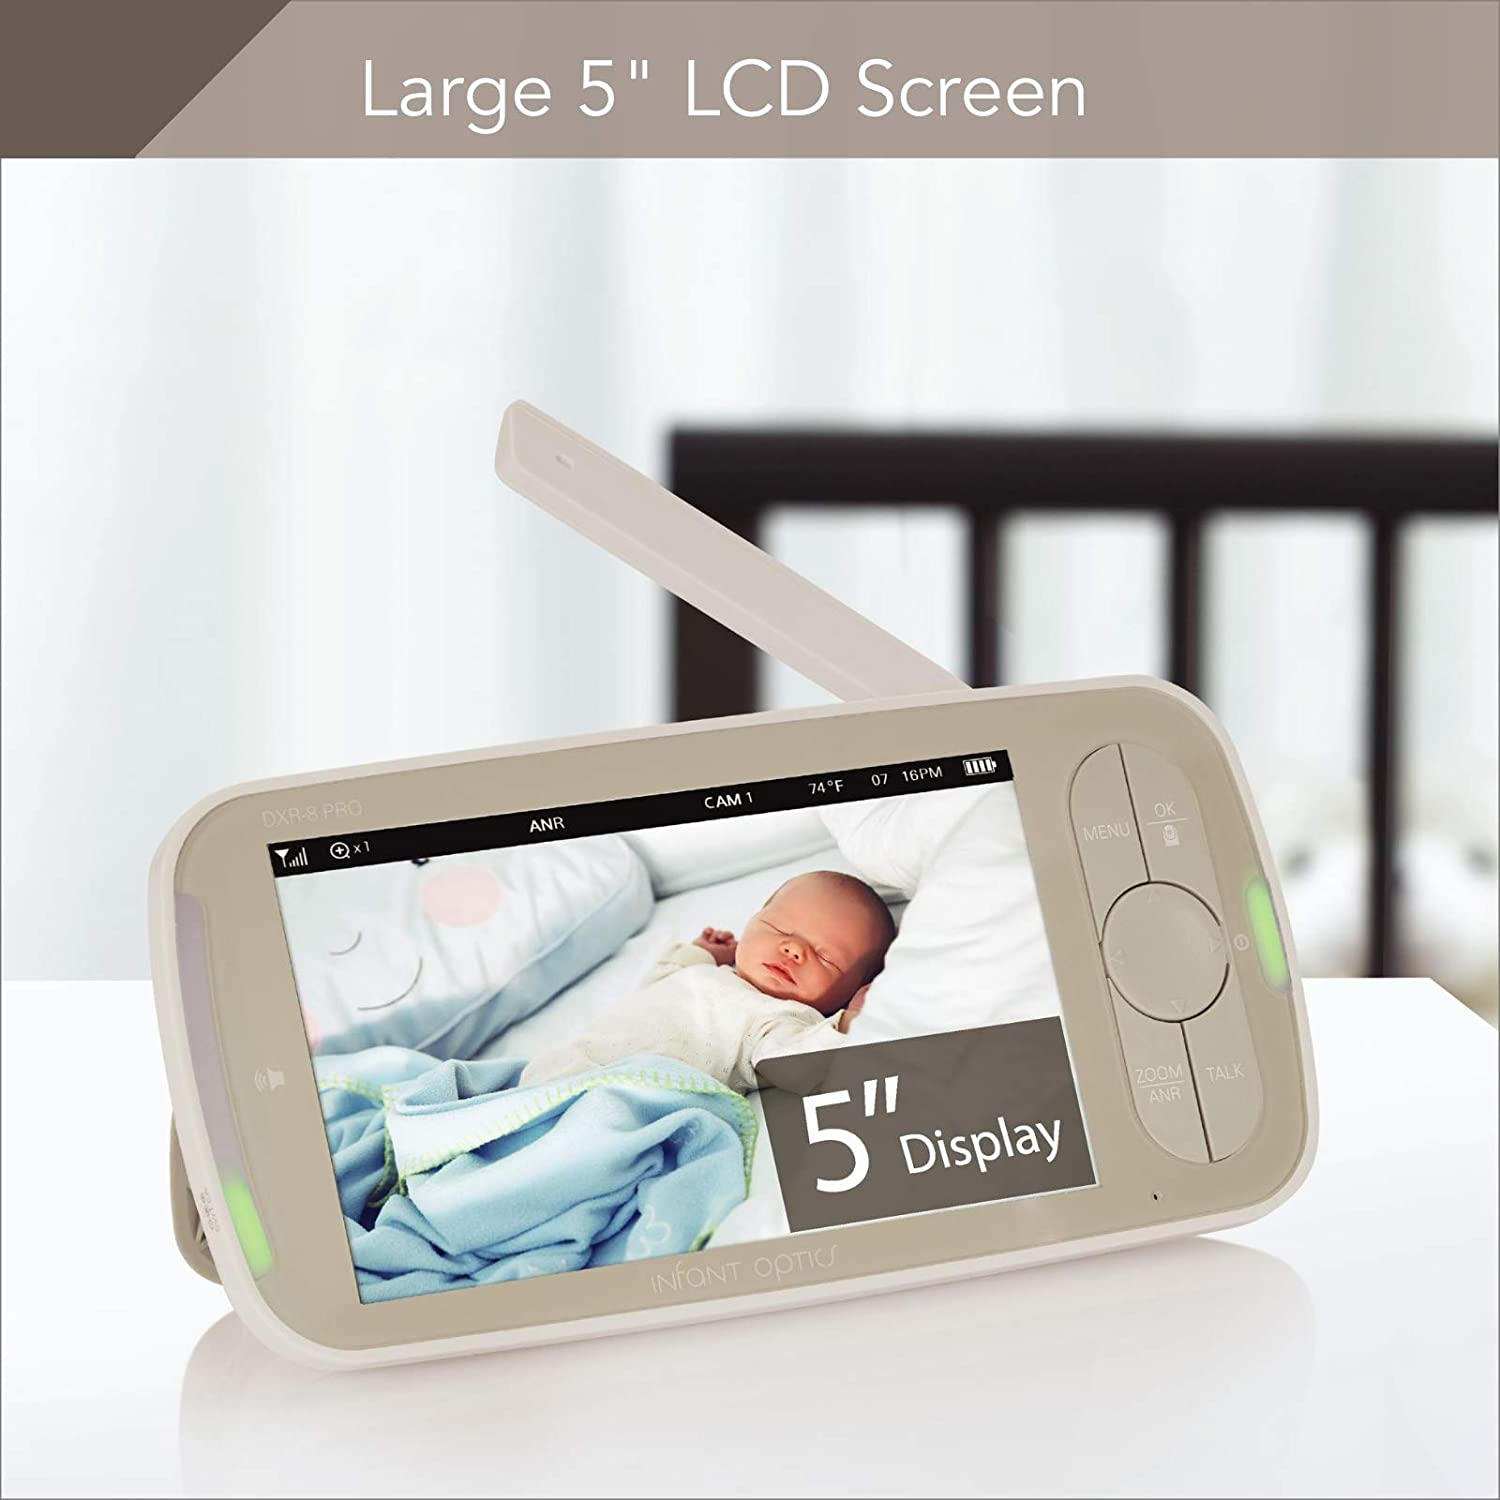 Resolution 720P Infant Optics DXR-8 PRO Baby Monitor with 5 Screen and ANR HD